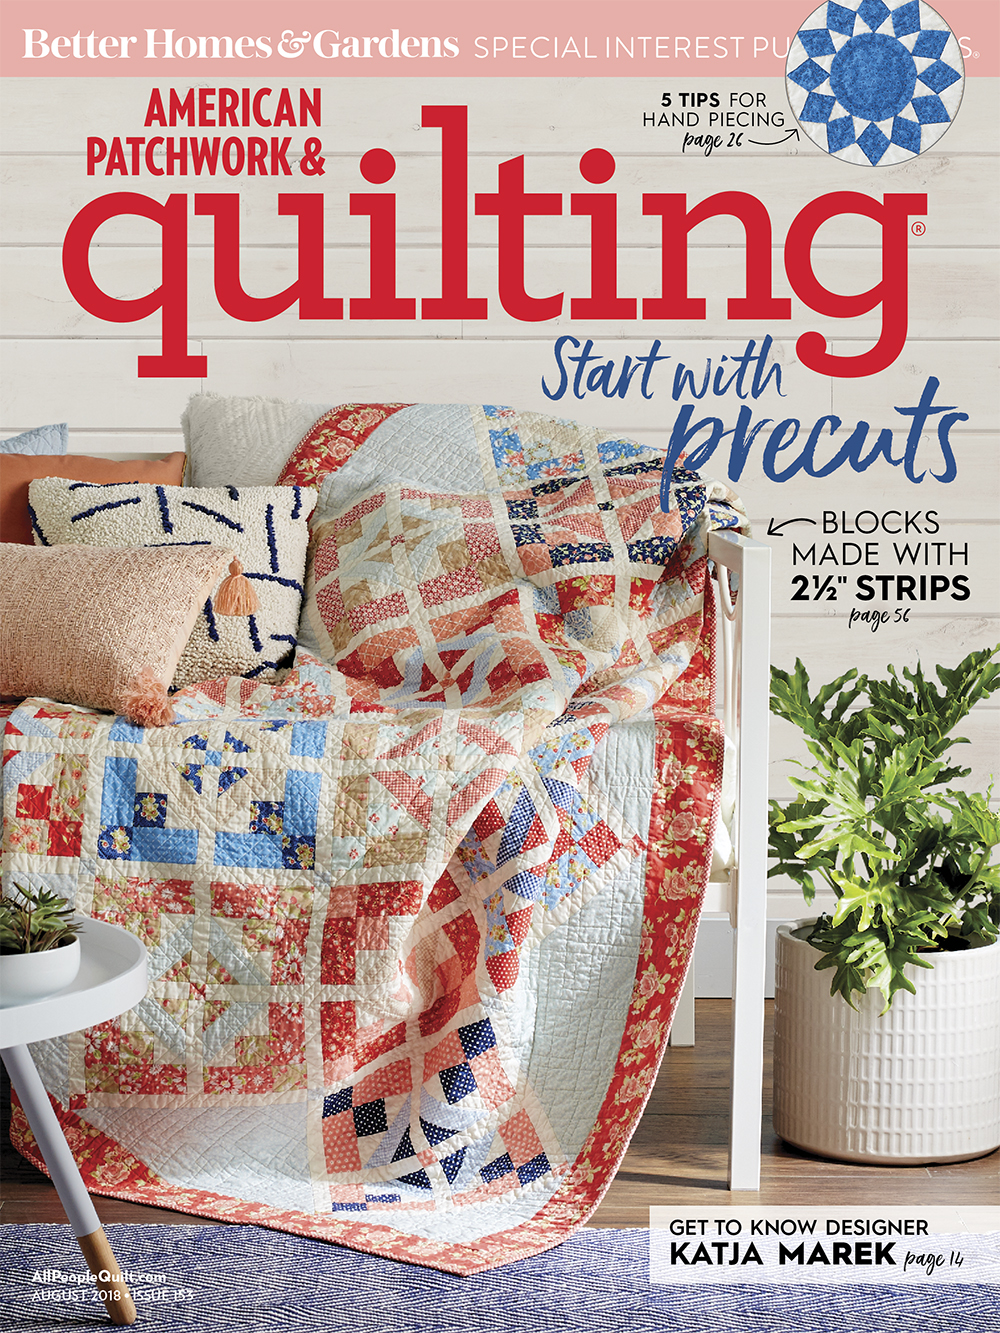 quilt quilting the patchwork in june wings and charitywings charity news american